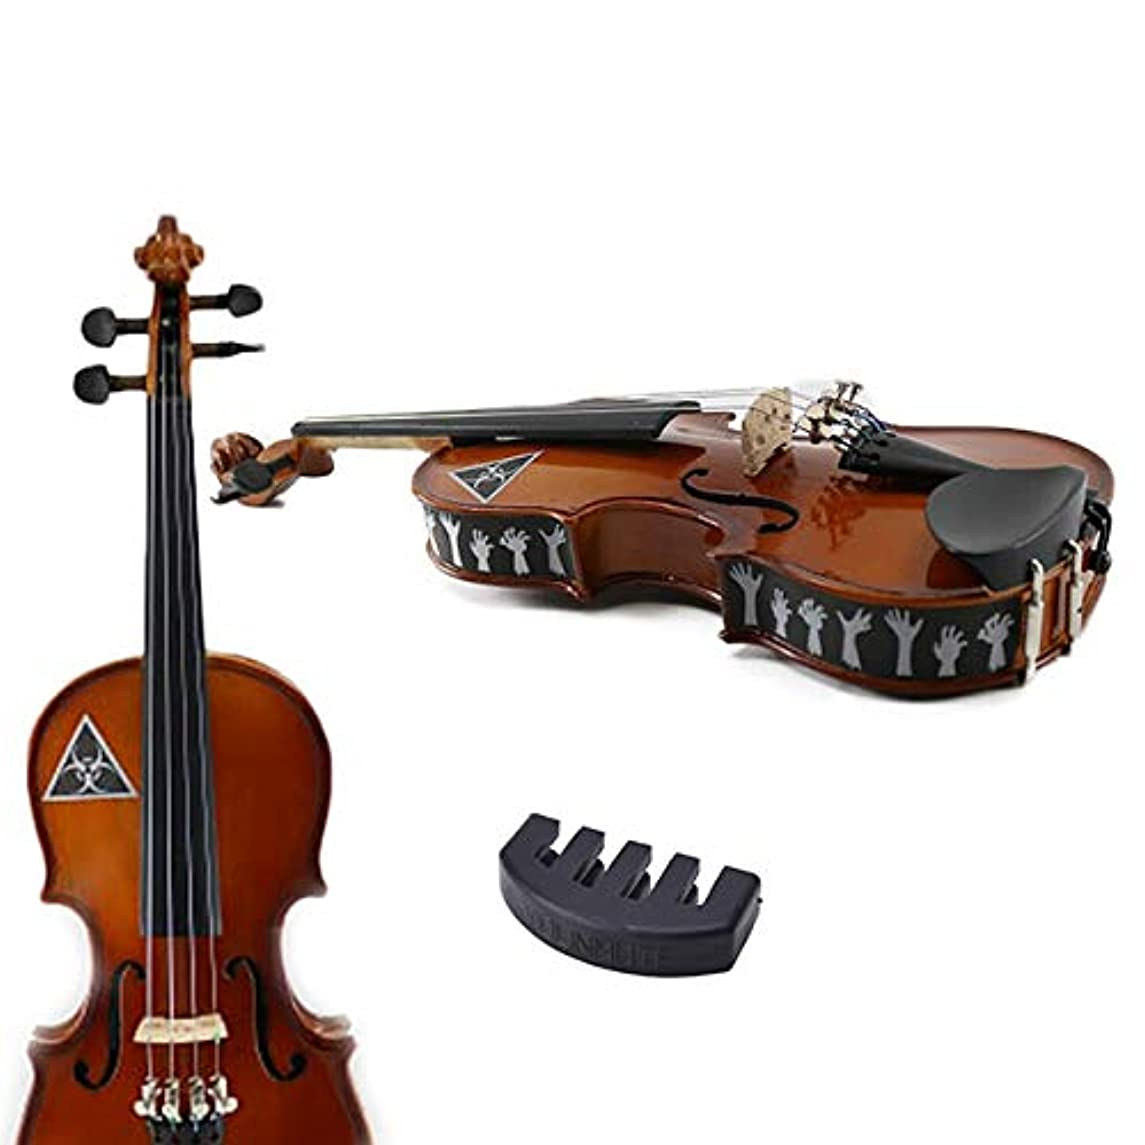 1/4 Size Violin Practice Mute with/Zombie Violin Skins - Removable Violin Decals - Fits 1/4 Size Violins (Violin not included)